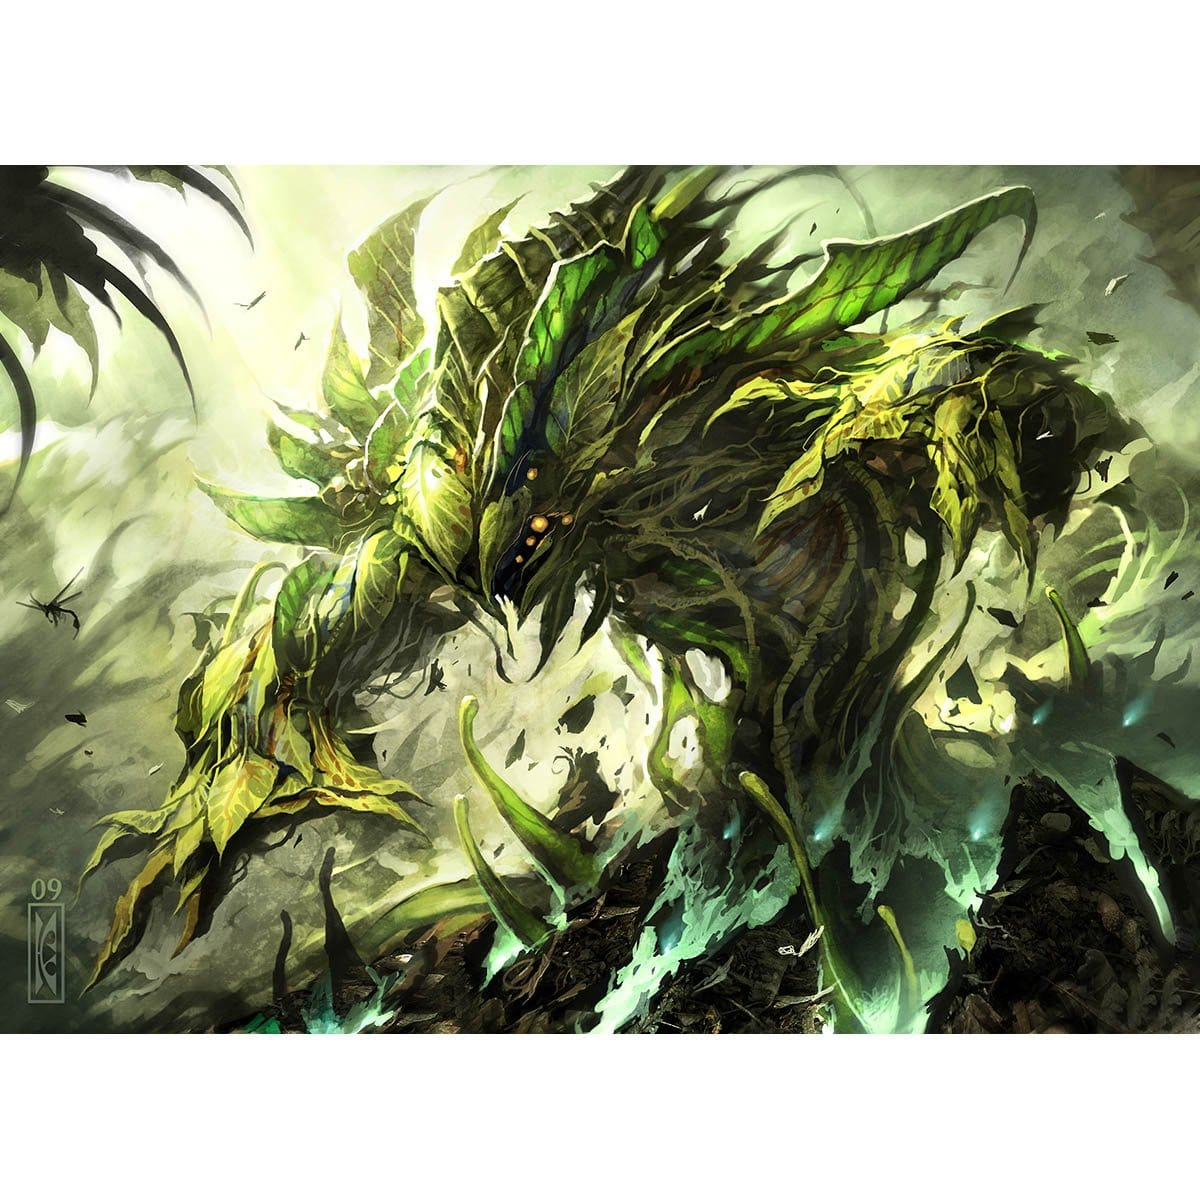 Vengevine Print - Print - Original Magic Art - Accessories for Magic the Gathering and other card games